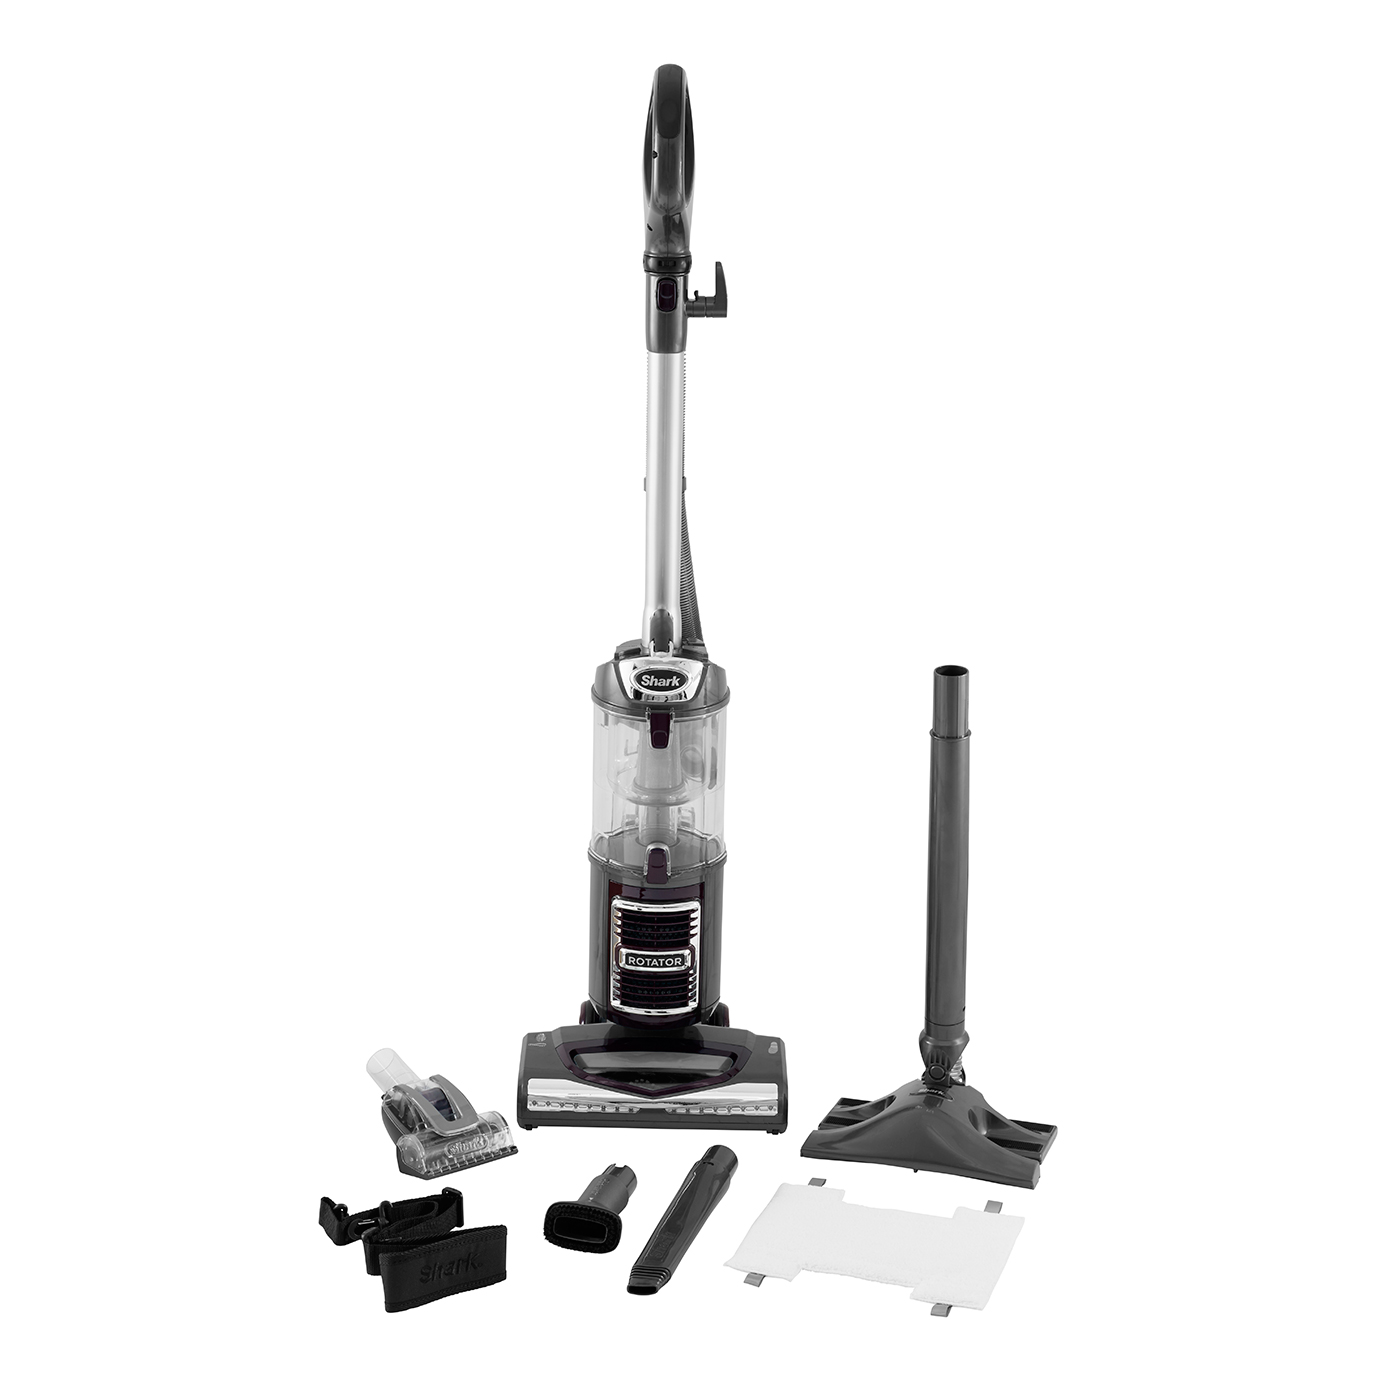 shark liftaway upright vacuum cleaner with truepet nv340ukt